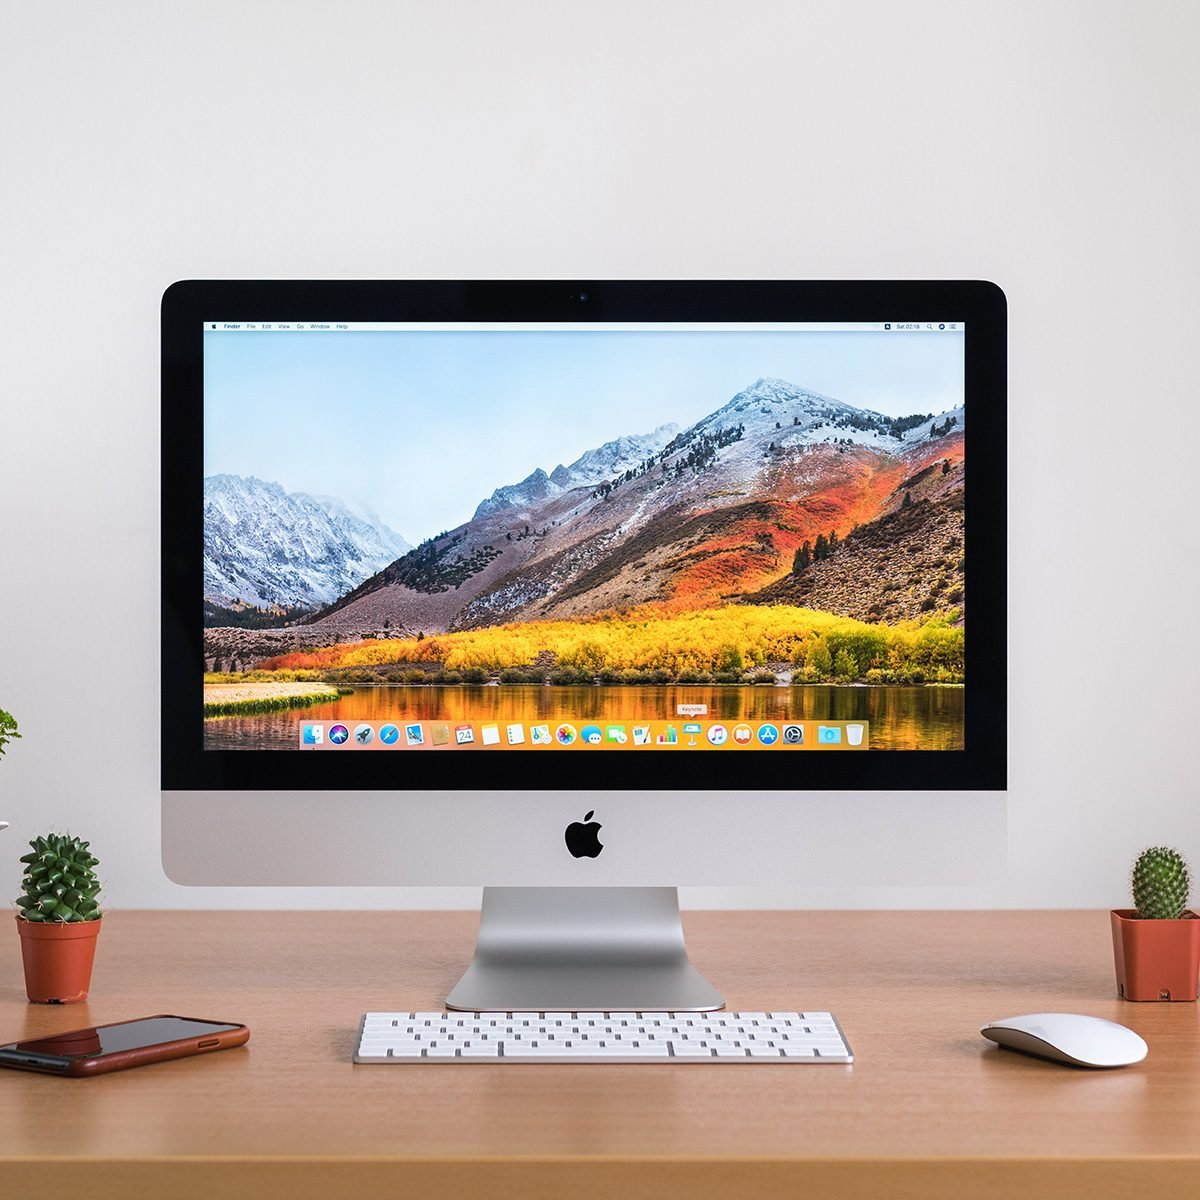 iMac monitor computers, iPhone, keyboard, magic mouse and plants vase on white desk